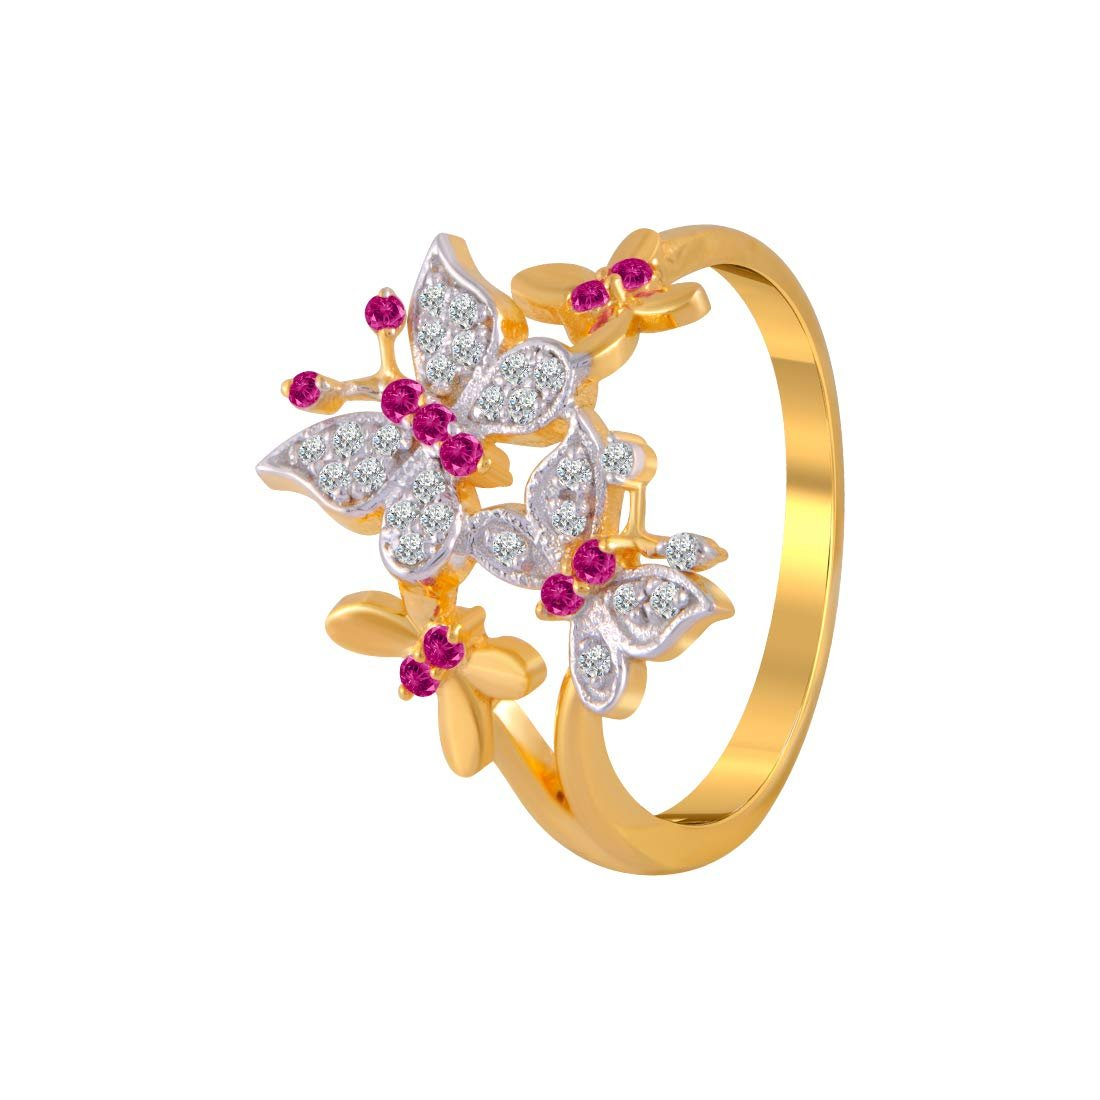 P C Chandra Jewellers 14k 585 Yellow Gold And American Diamond Ring For Women Fashion Marketplace India Fashion Re Seller Hub